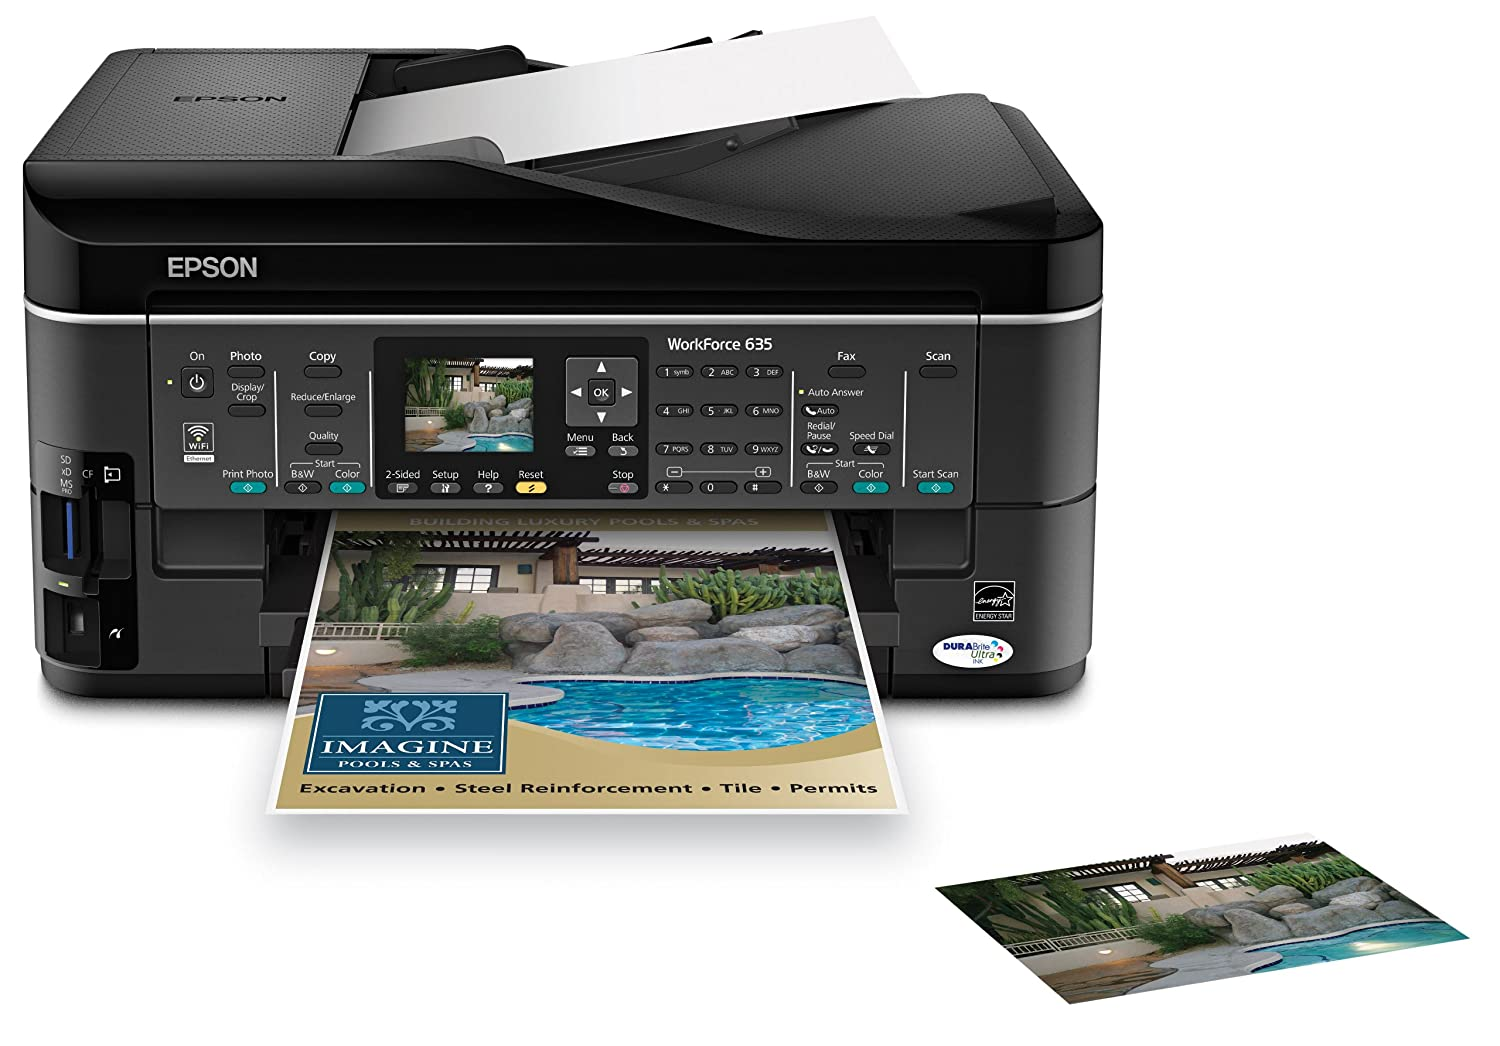 Amazon.com: Epson WorkForce 635 Color Inkjet All-in-One (C11CA69201):  Office Products